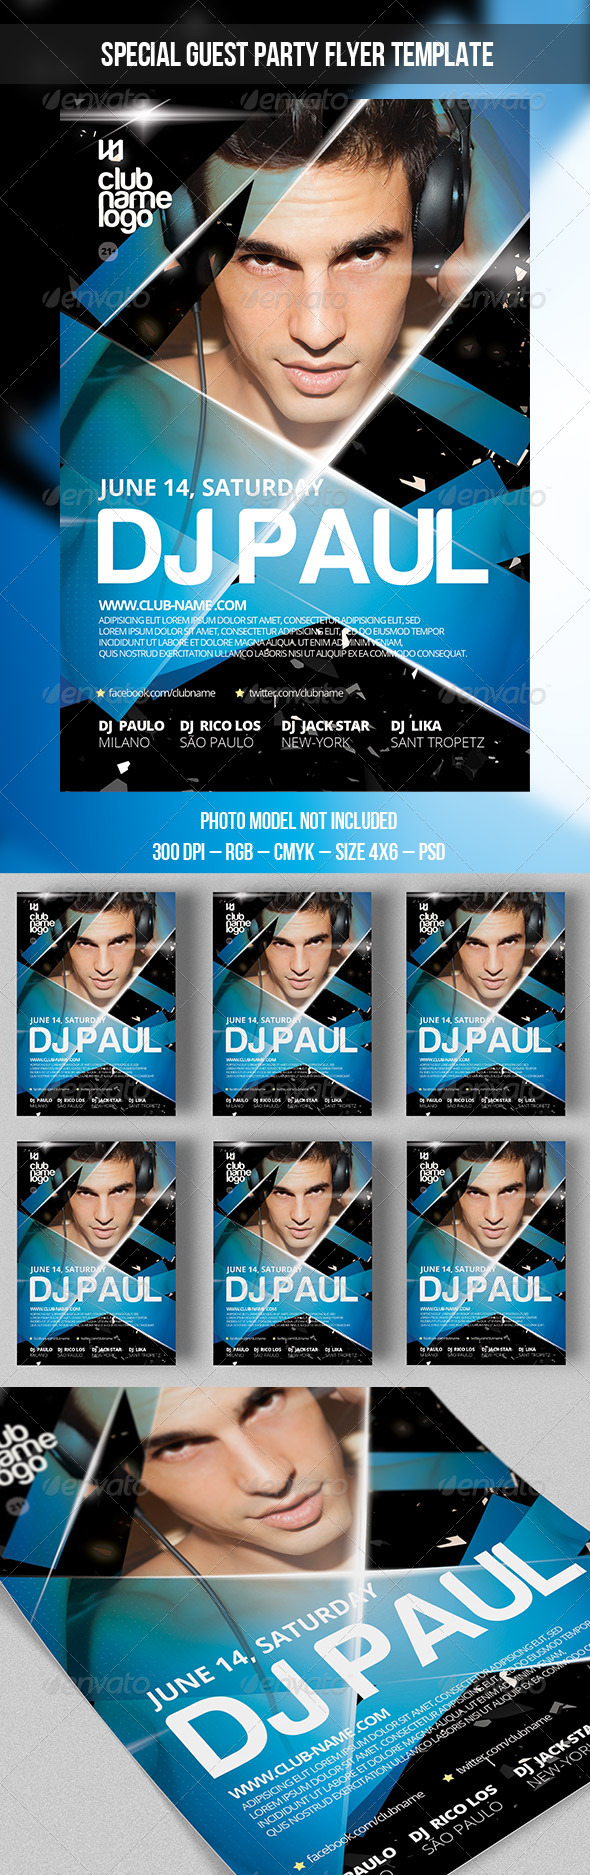 GraphicRiver Special Guest Party Template 7973474